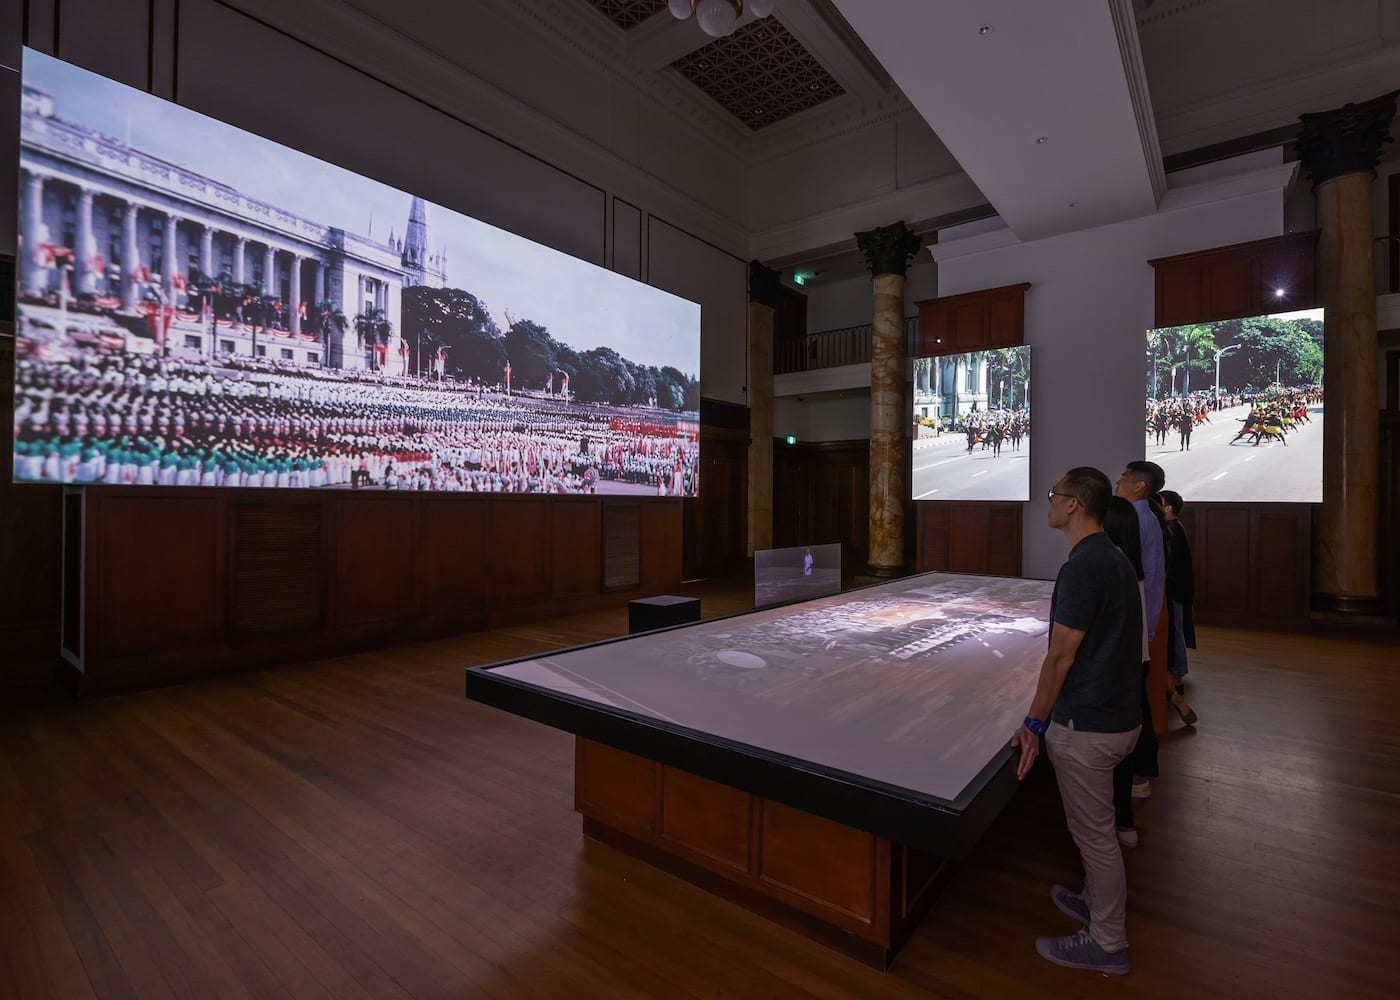 Museums and Exhibits in Singapore: City Hall If Walls Could Talk at National Gallery